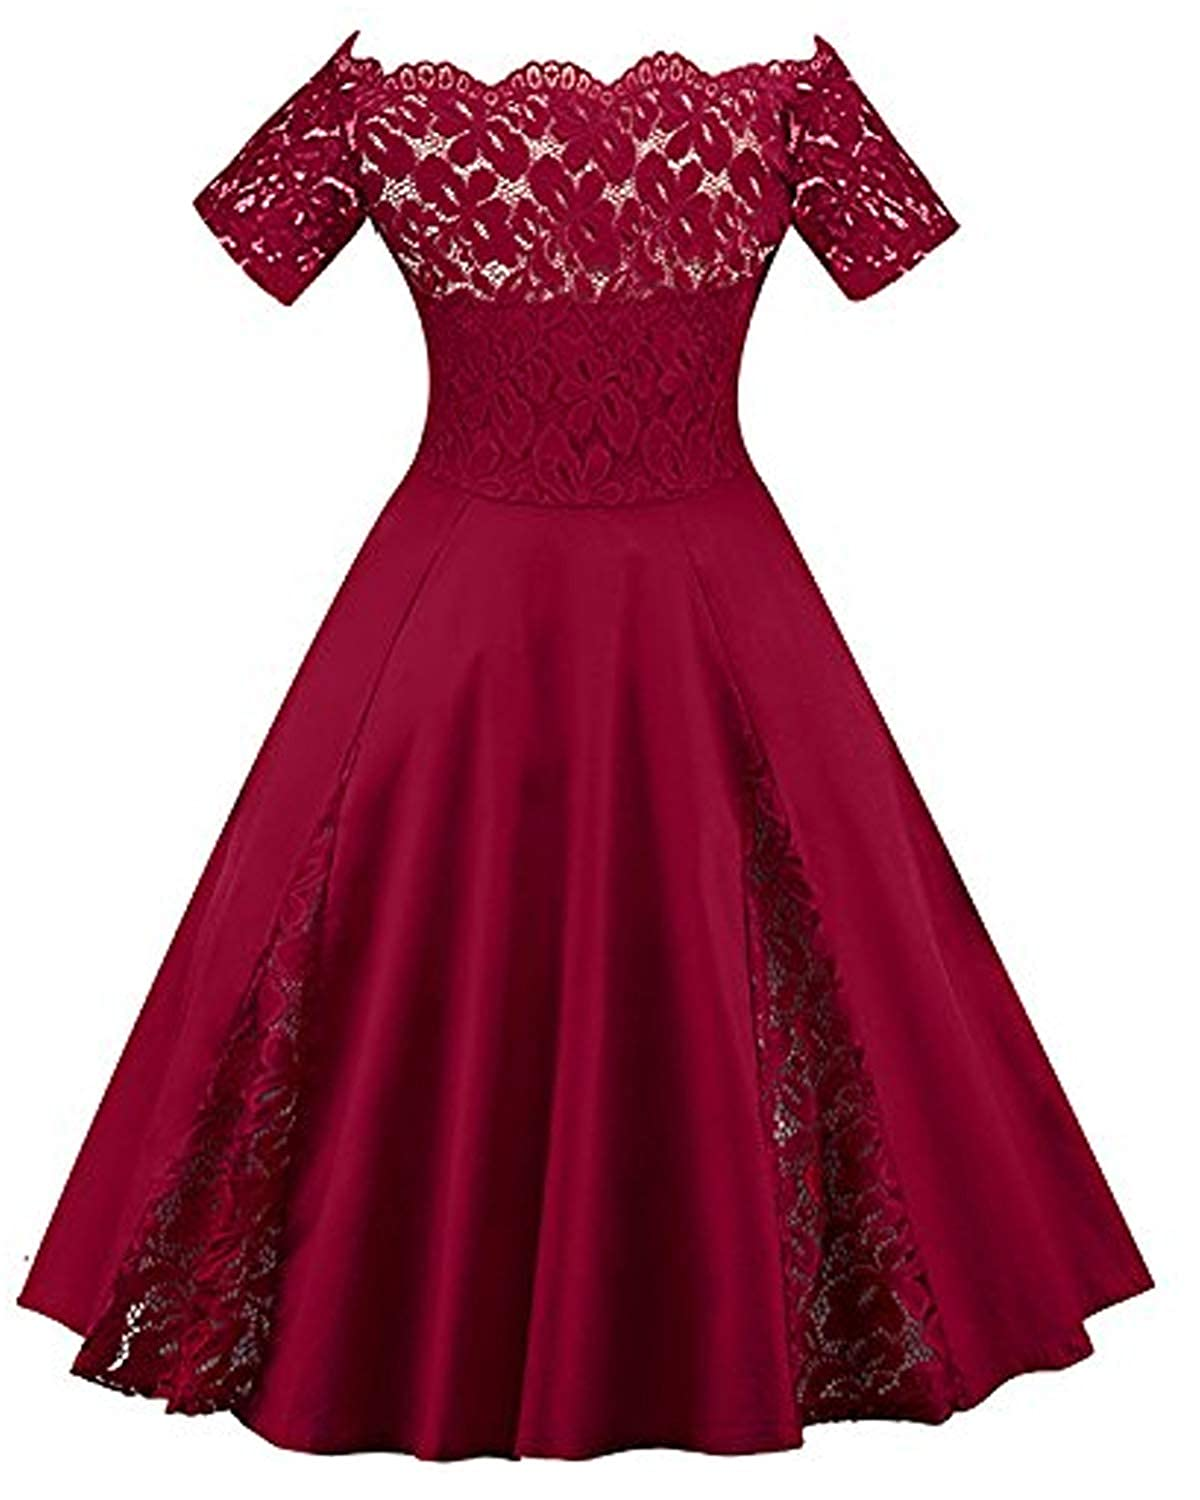 66660db12b19 Amazon.com: GAMISS Women's Vintage Off Shoulder Cocktail Dress Plus Size  Floral Lace Dress Short Sleeve (S-5XL) (1 Red Wine, 5XL): Clothing